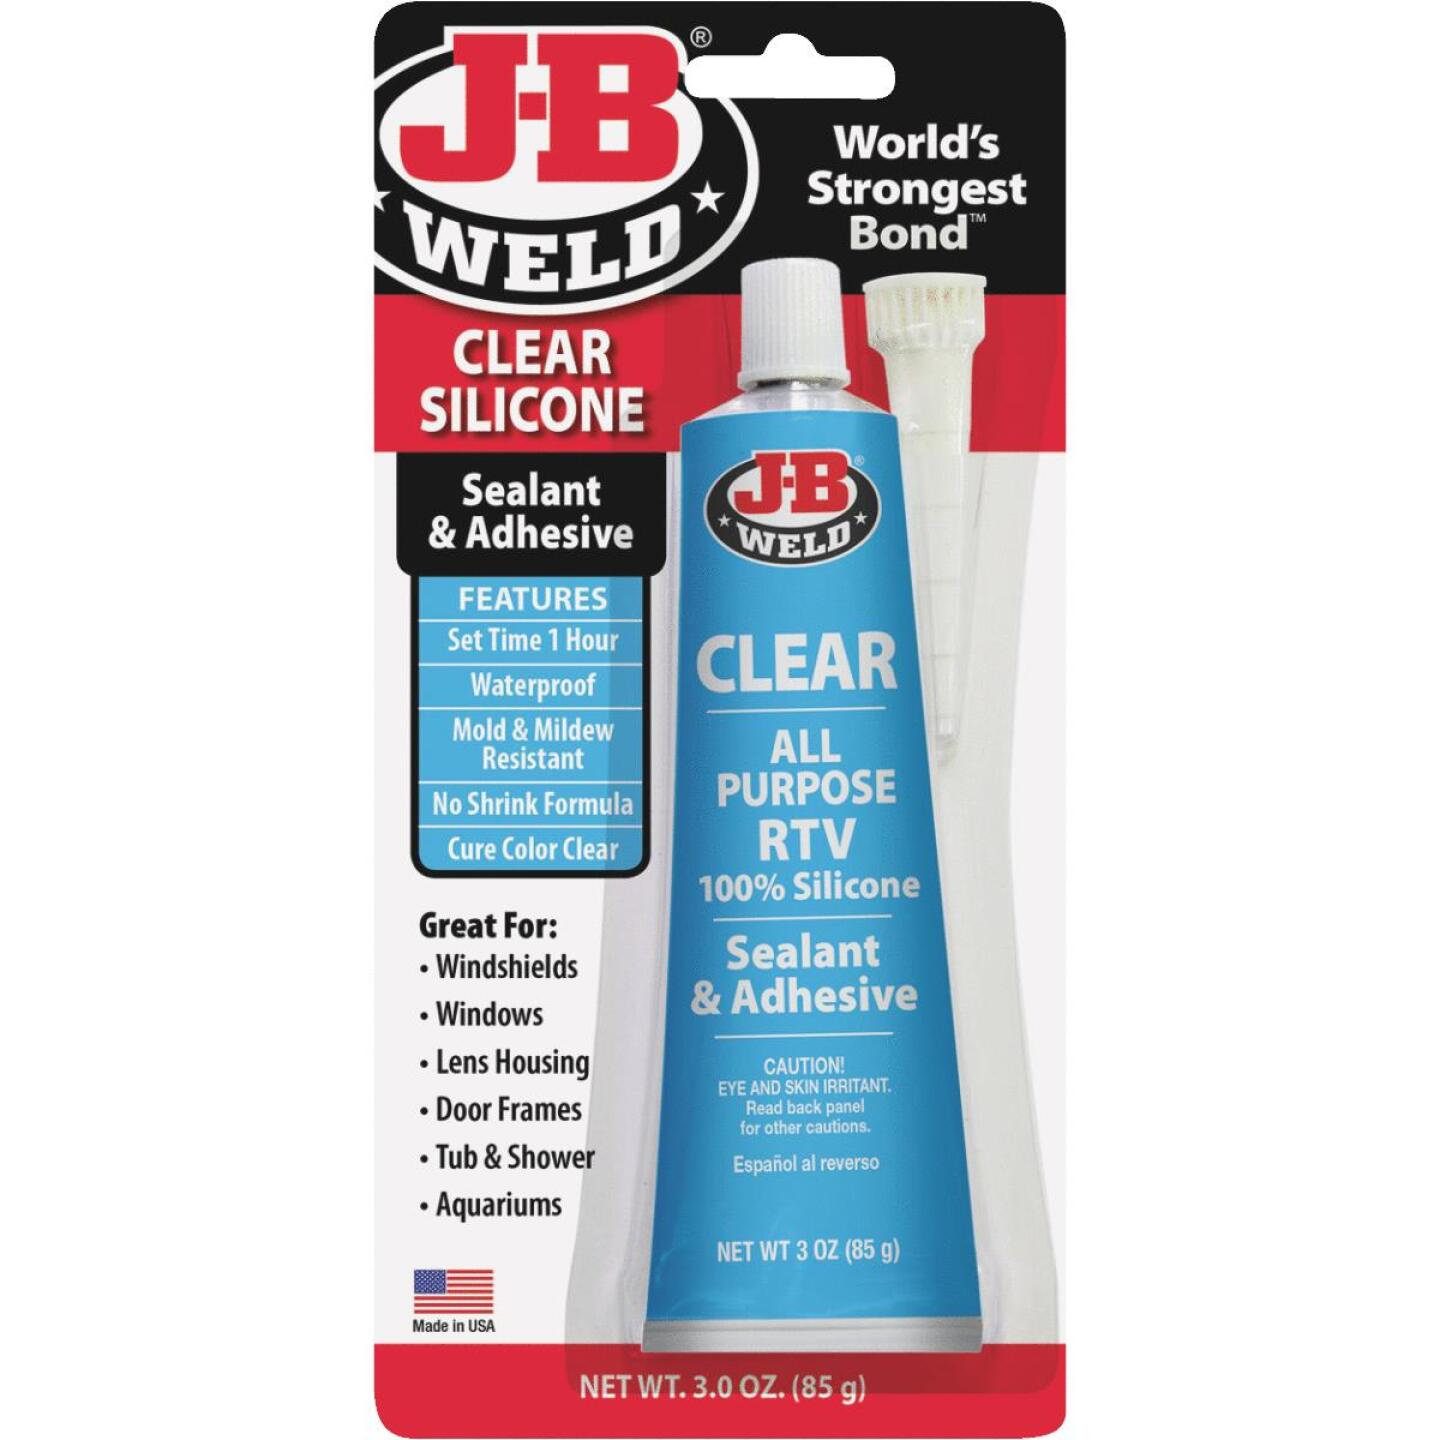 J-B Weld 3 Oz. Clear All-Purpose RTV Silicone Sealant & Adhesive Image 1